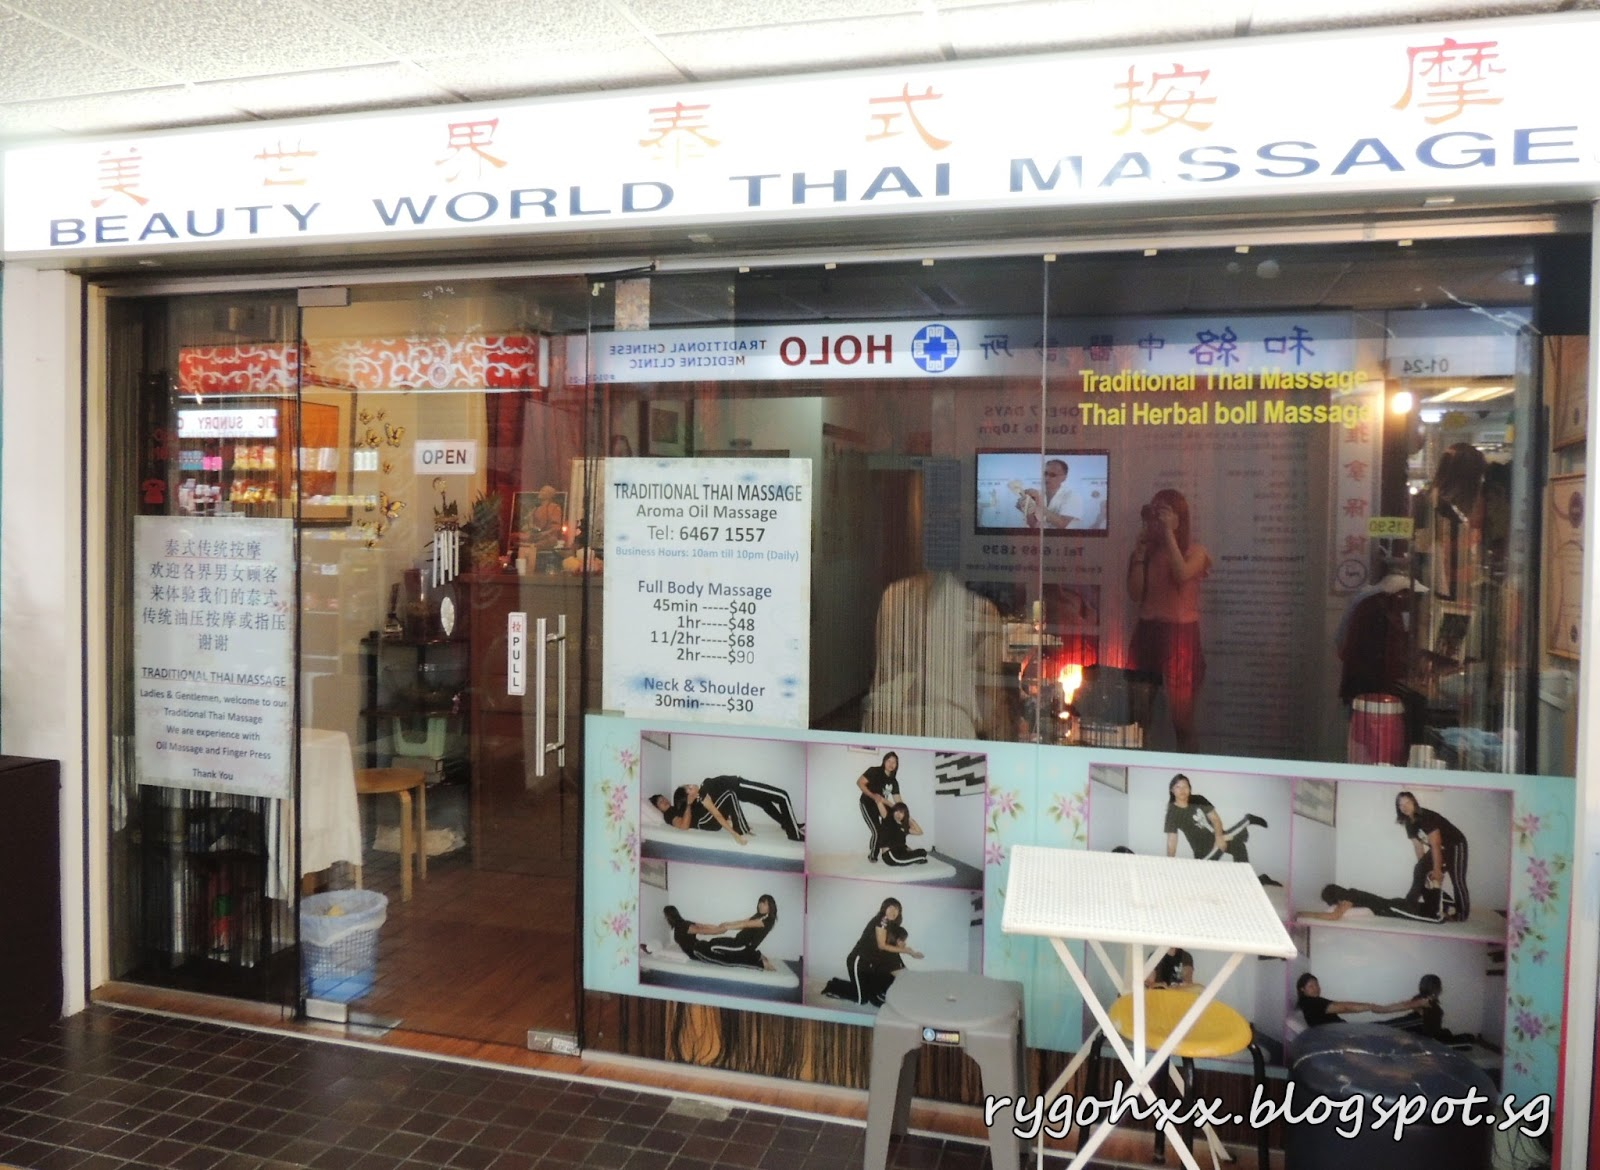 Beauty world thai massage beautiful life for Aroma royal thai cuisine nj